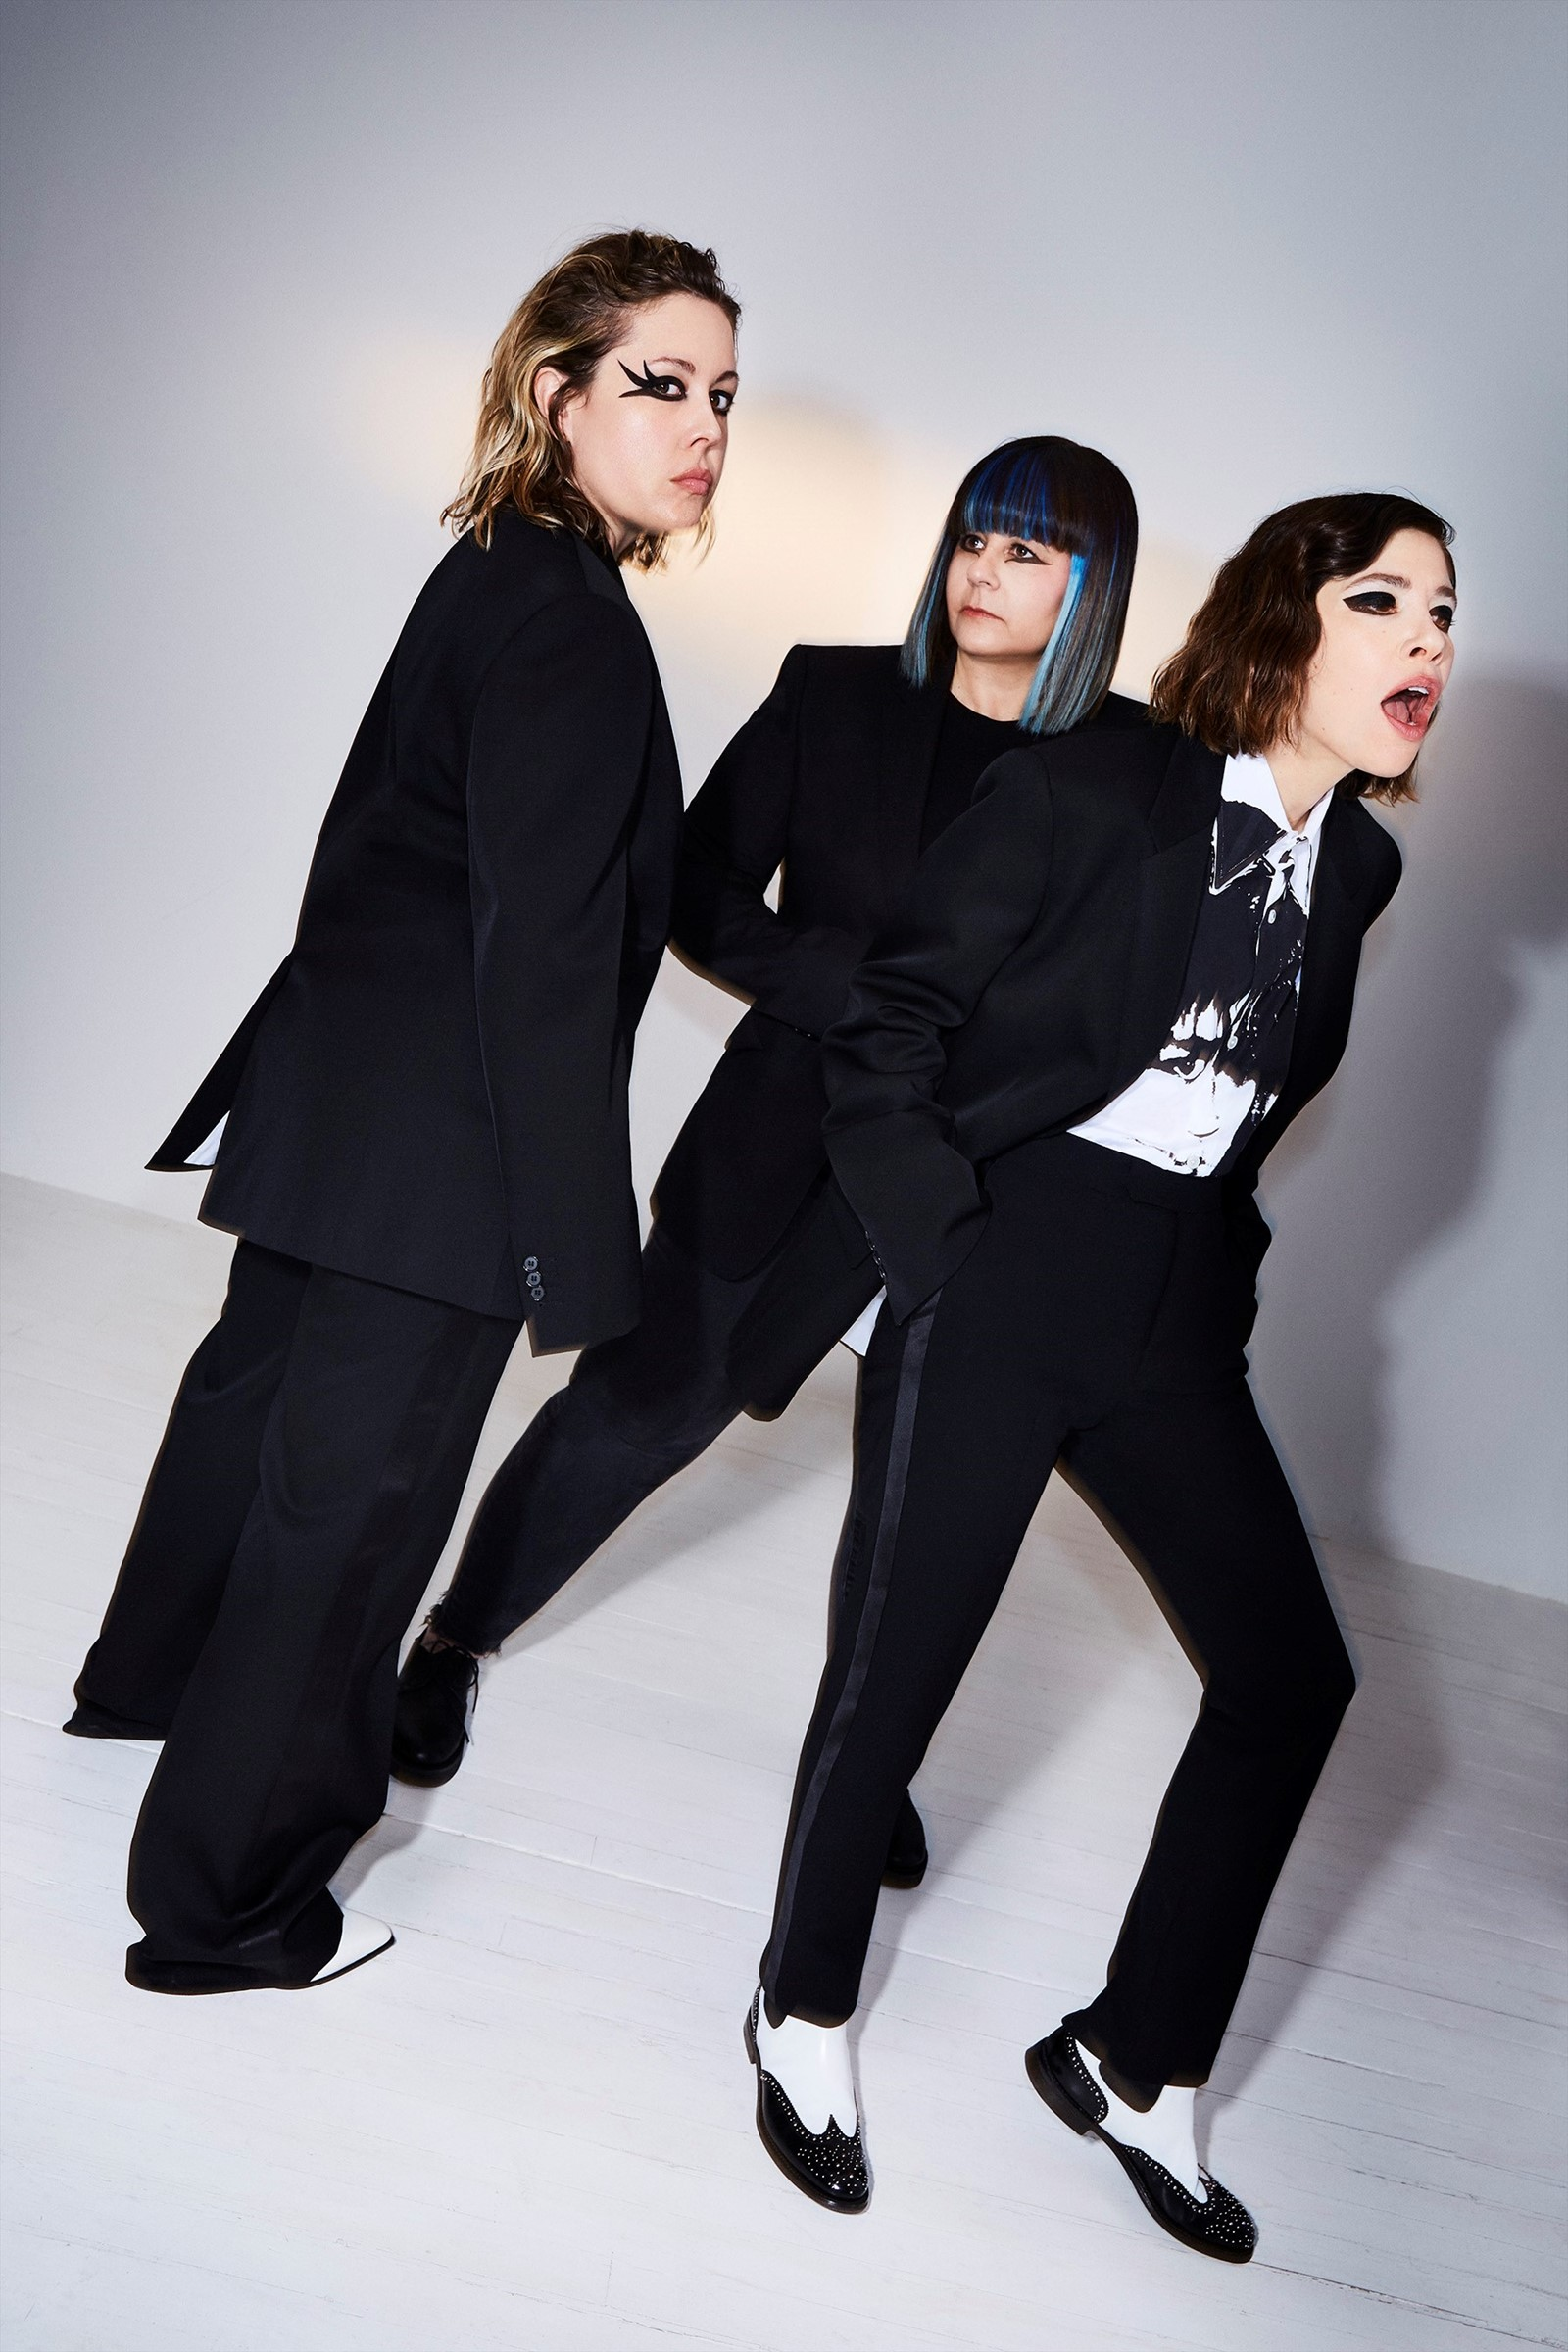 Sleater-Kinney before Janet Weiss's departure